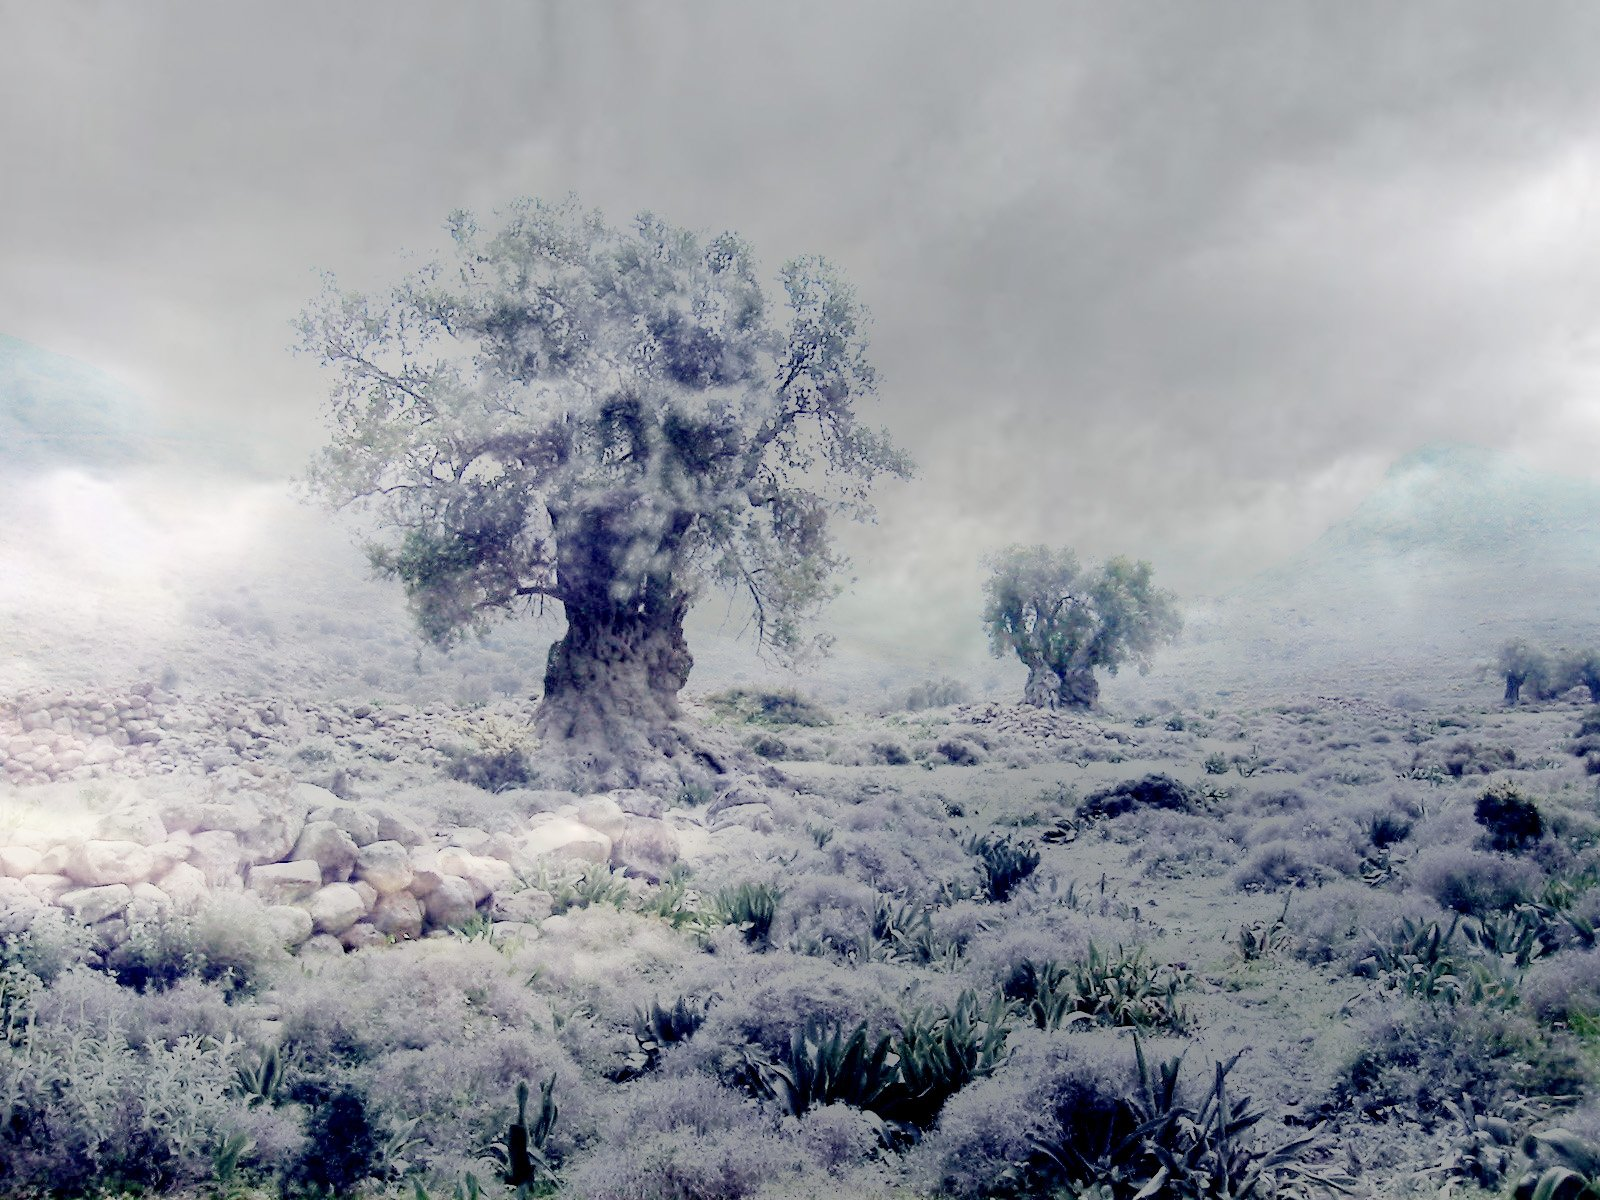 winter nature best wallpapers ever - photo #42